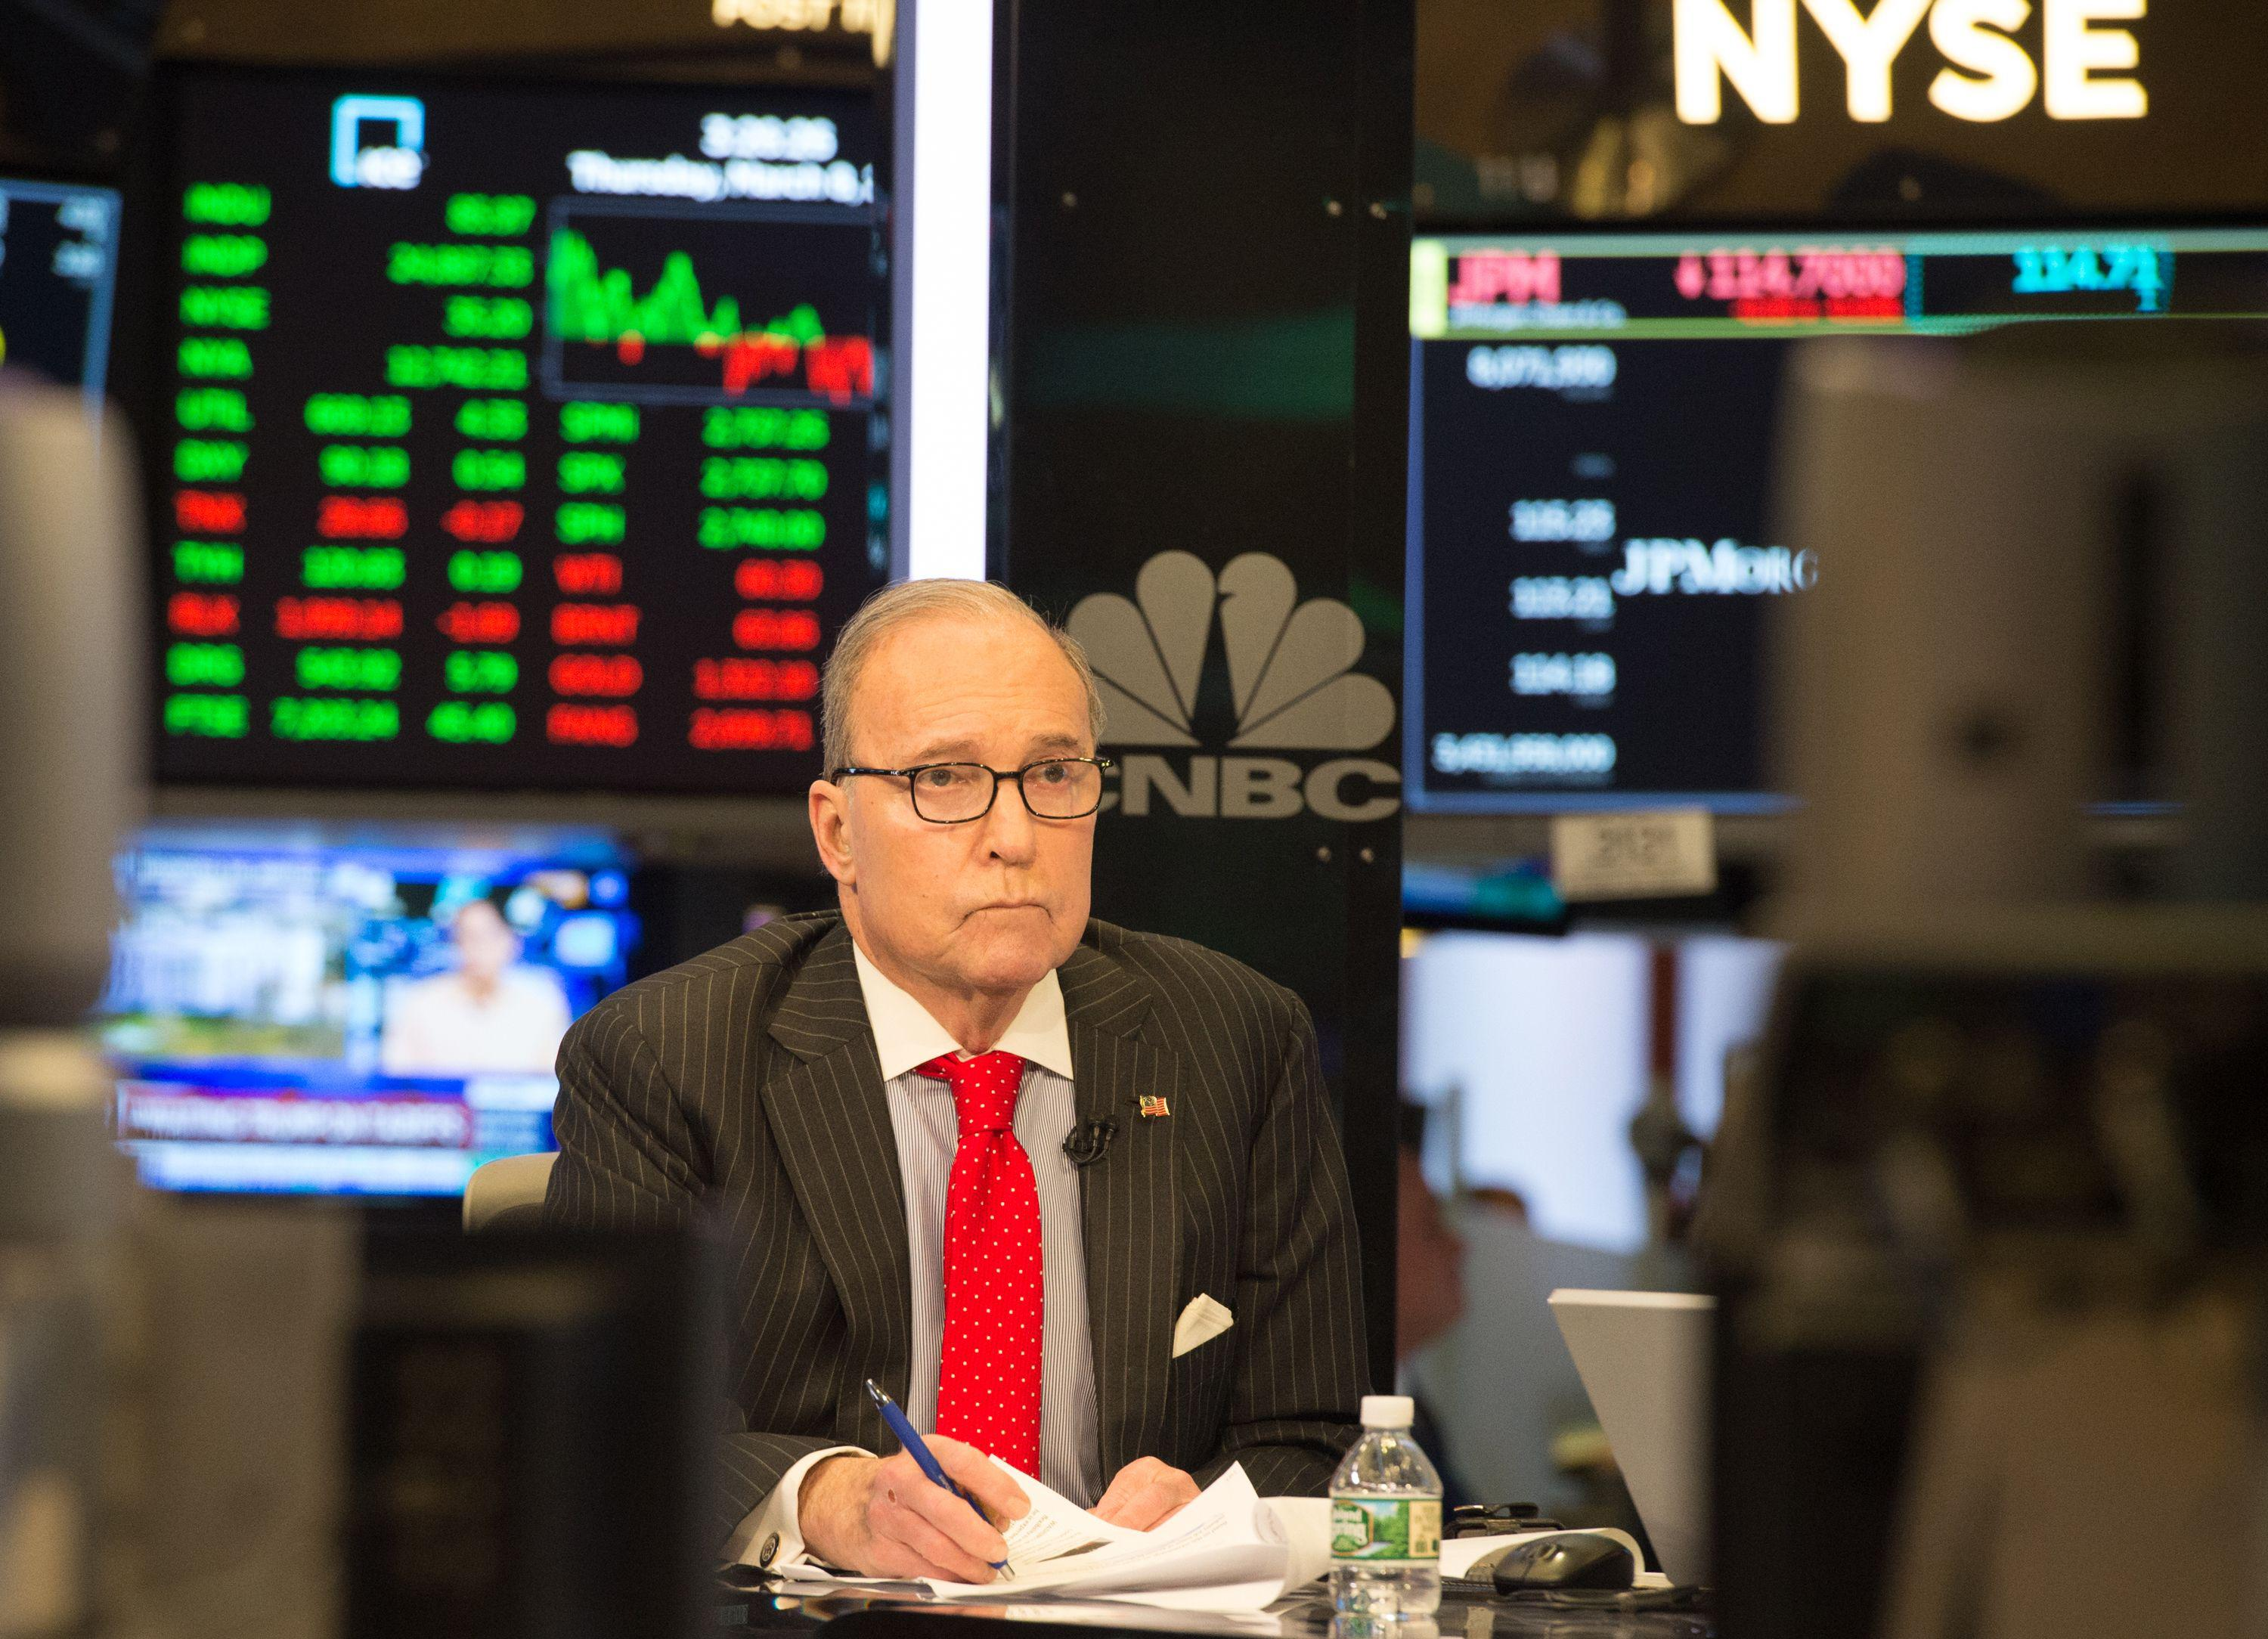 US conservative commentator and economic analyst Larry Kudlow speaks on the set of CNBC at the closing bell of the Dow Industrial Average at the New York Stock Exchange on March 8, 2018 in New York.  / AFP PHOTO / Bryan R. Smith        (Photo credit should read BRYAN R. SMITH/AFP/Getty Images)